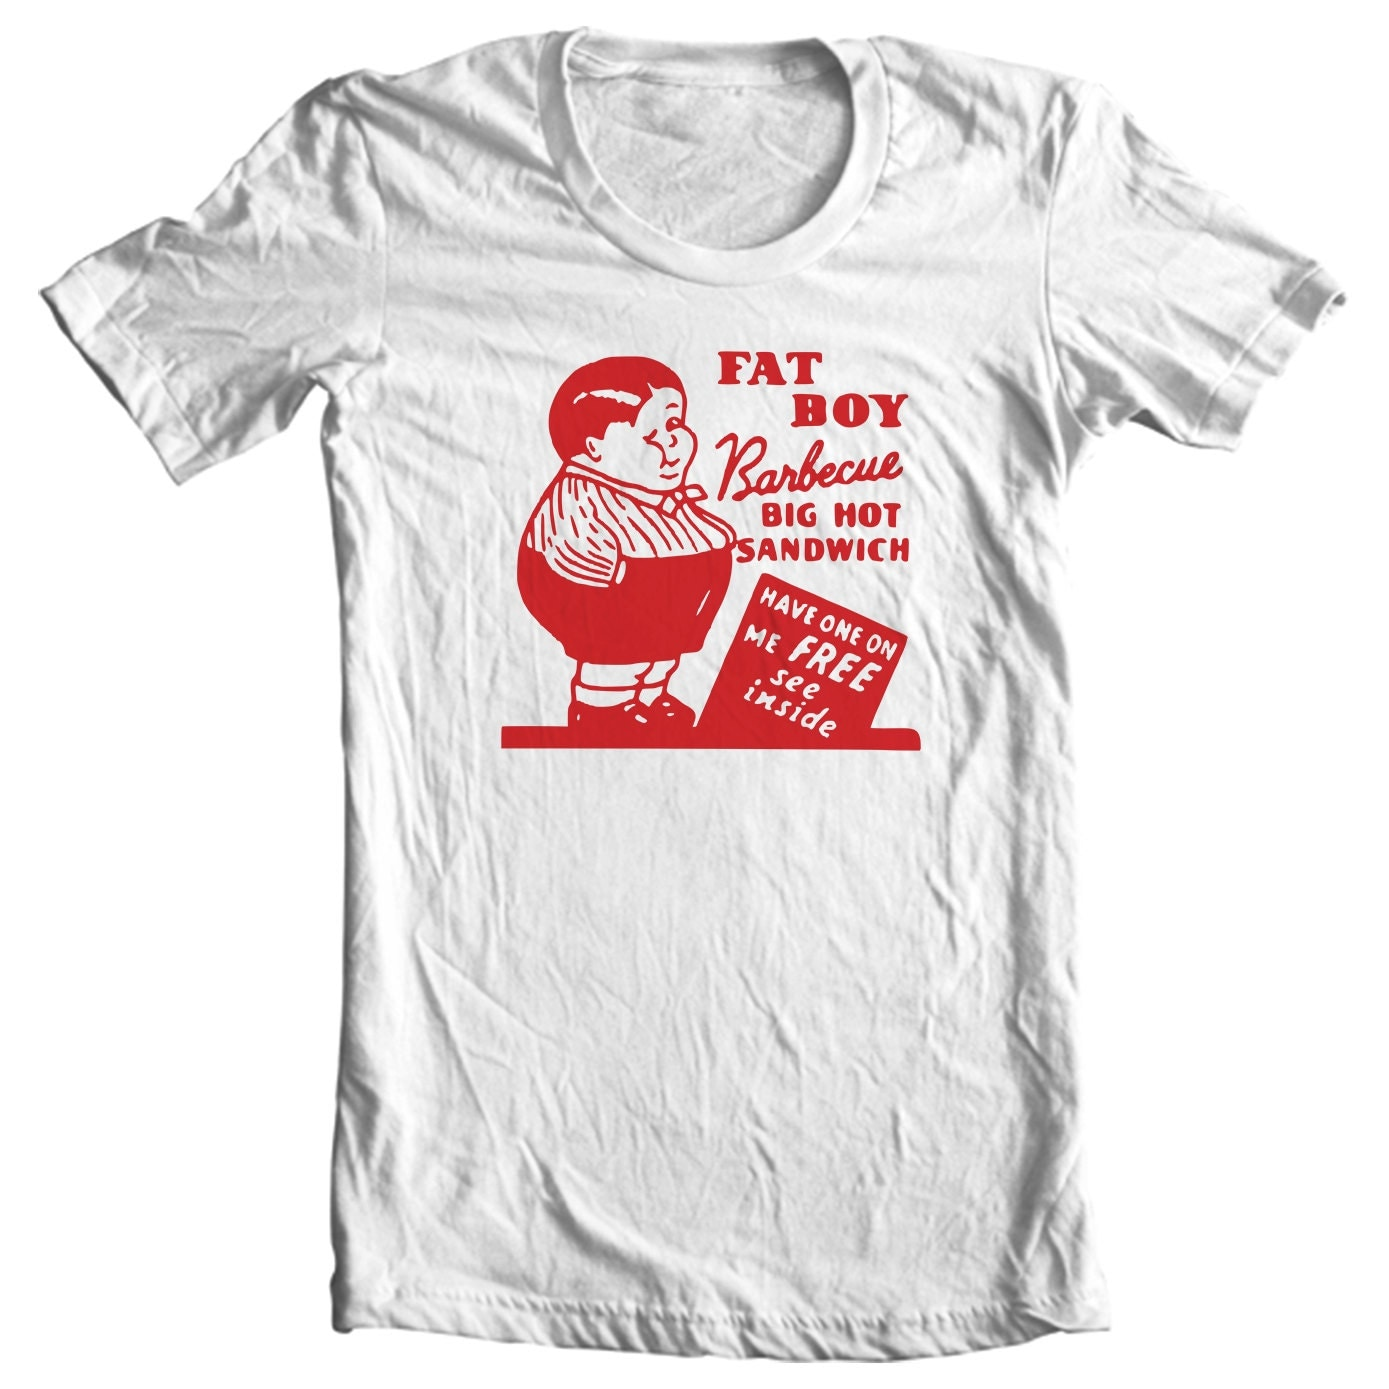 Fat Boy Barbecue San Francisco California Vintage Matchbook T-shirt